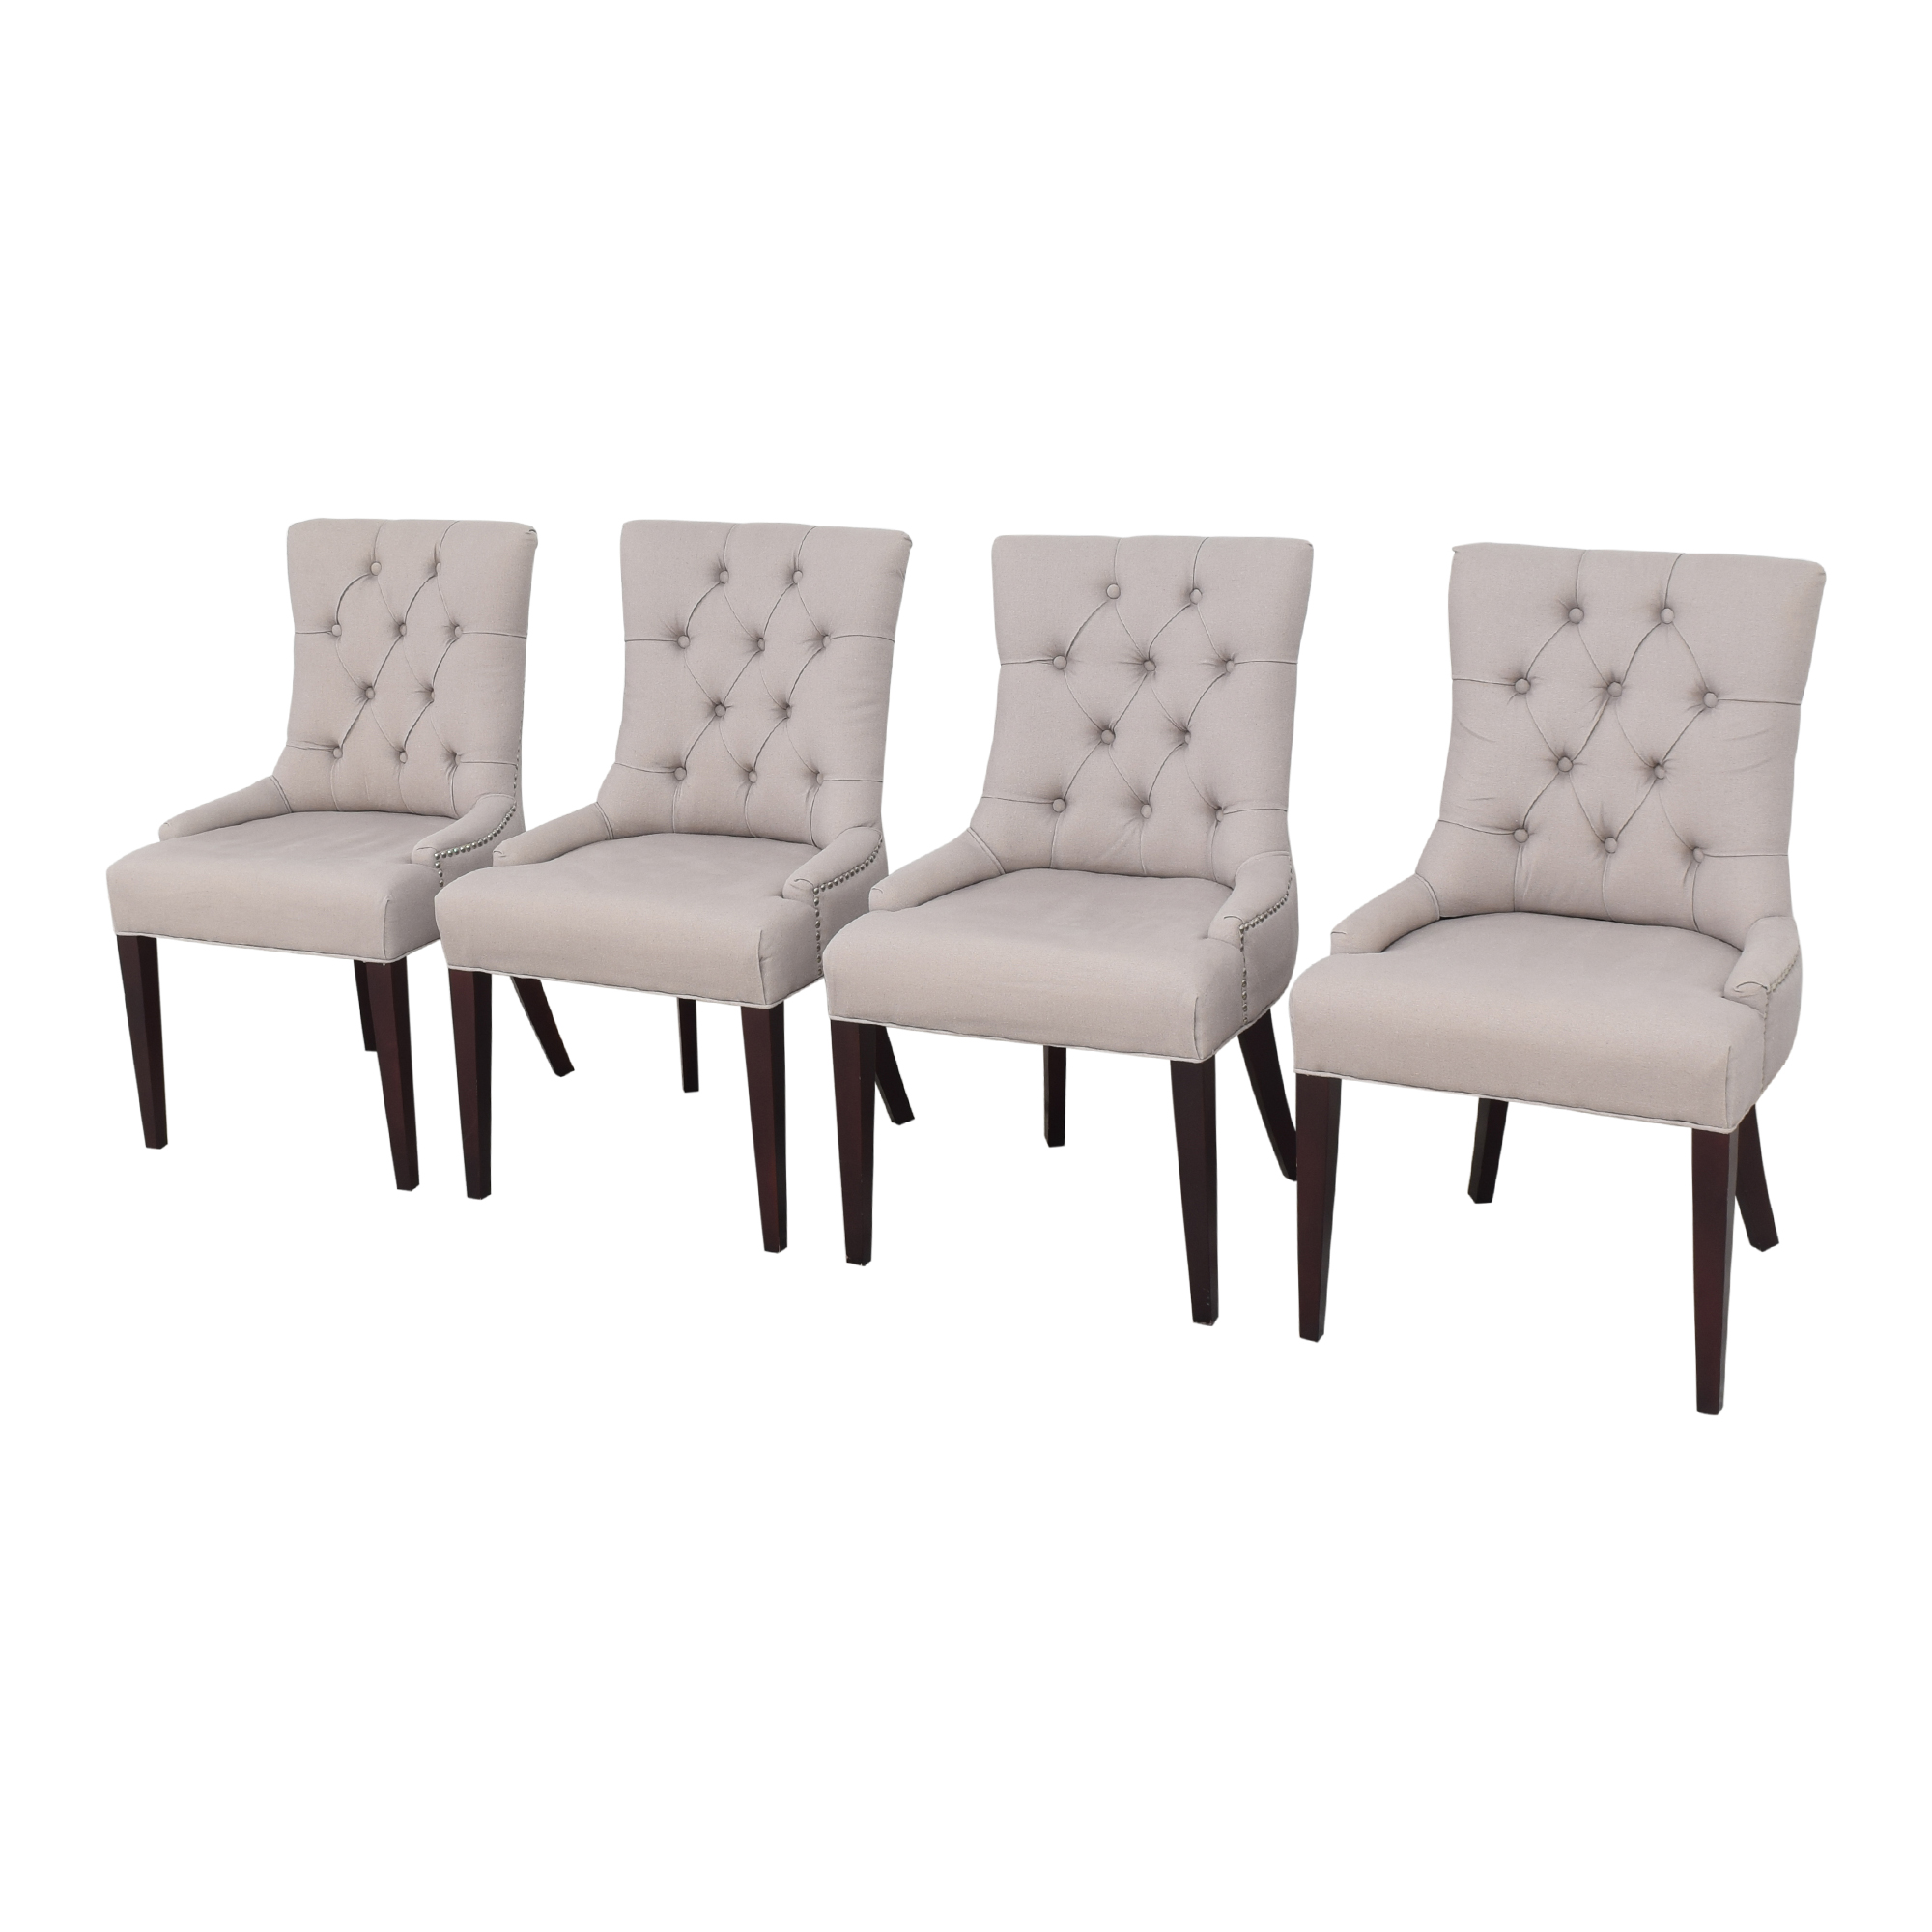 shop Safavieh Nimes Tufted Dining Chairs Safavieh Dining Chairs